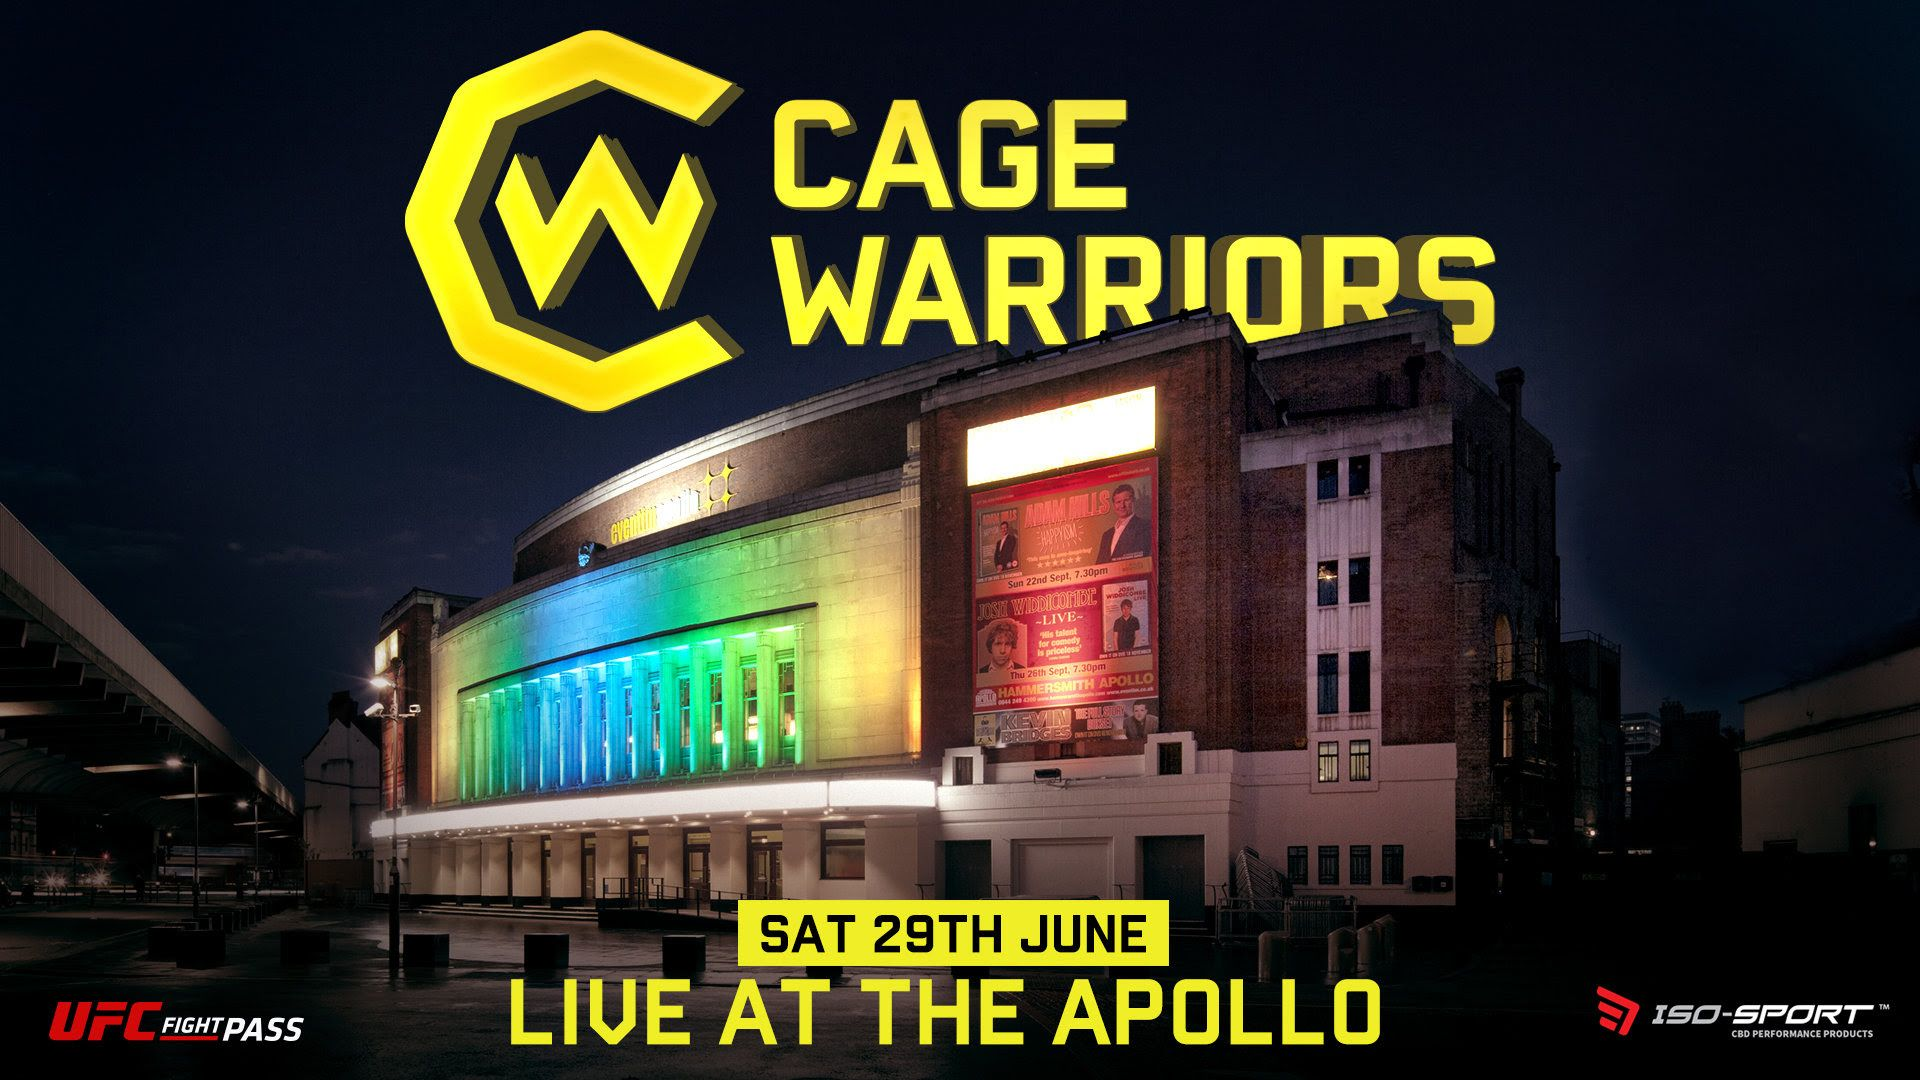 Cage Warriors are going Live at the Apollo!